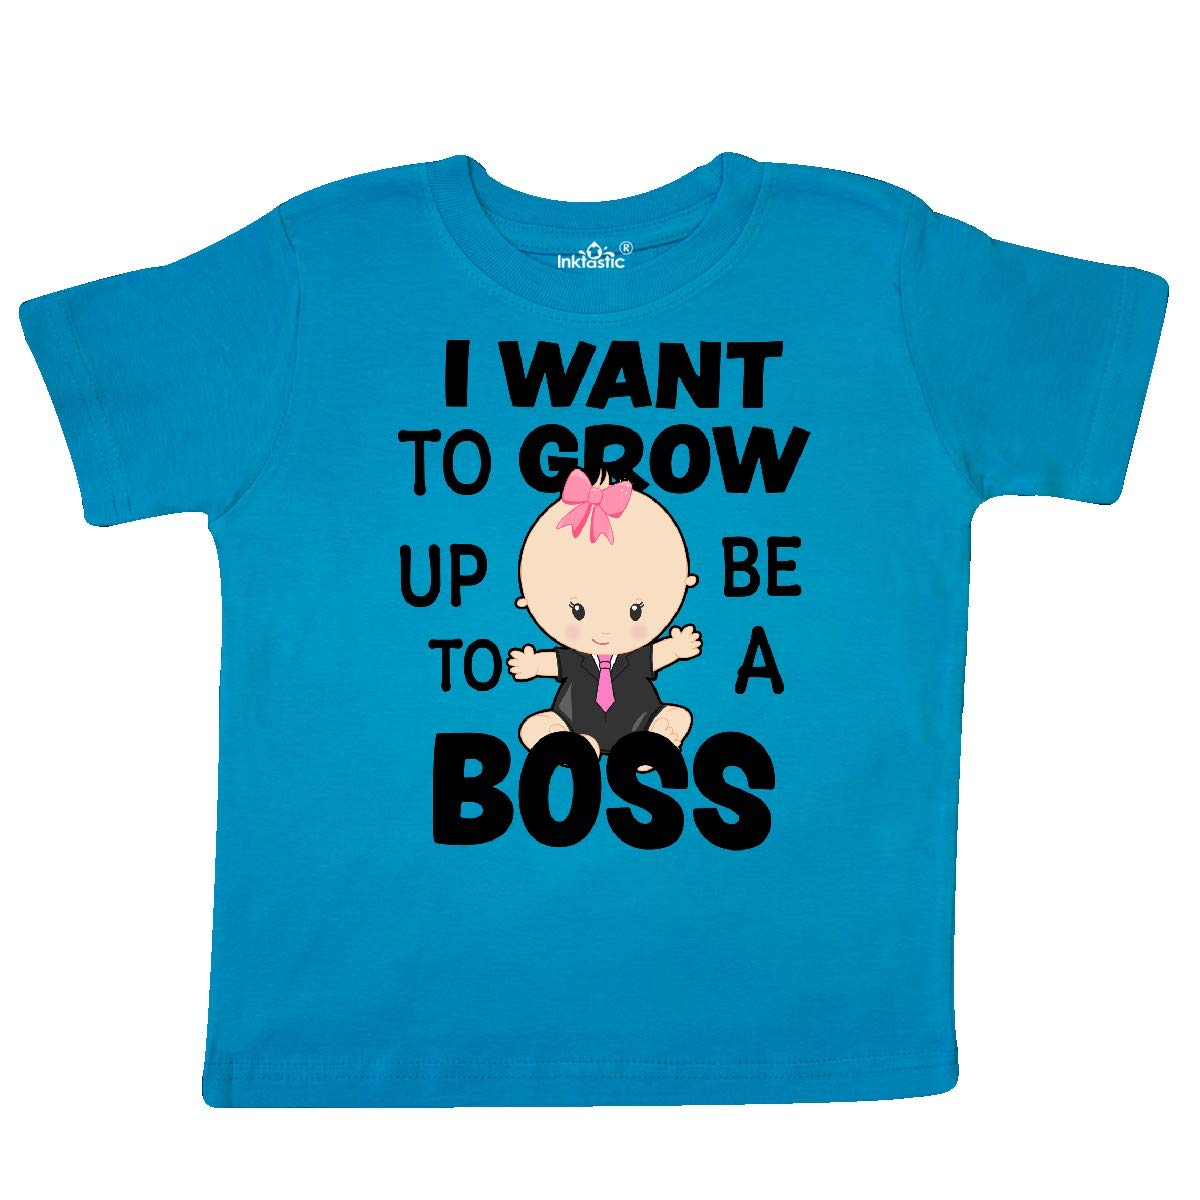 inktastic I Want to Grow Up to Be a Boss with Baby in Suit Toddler T-Shirt